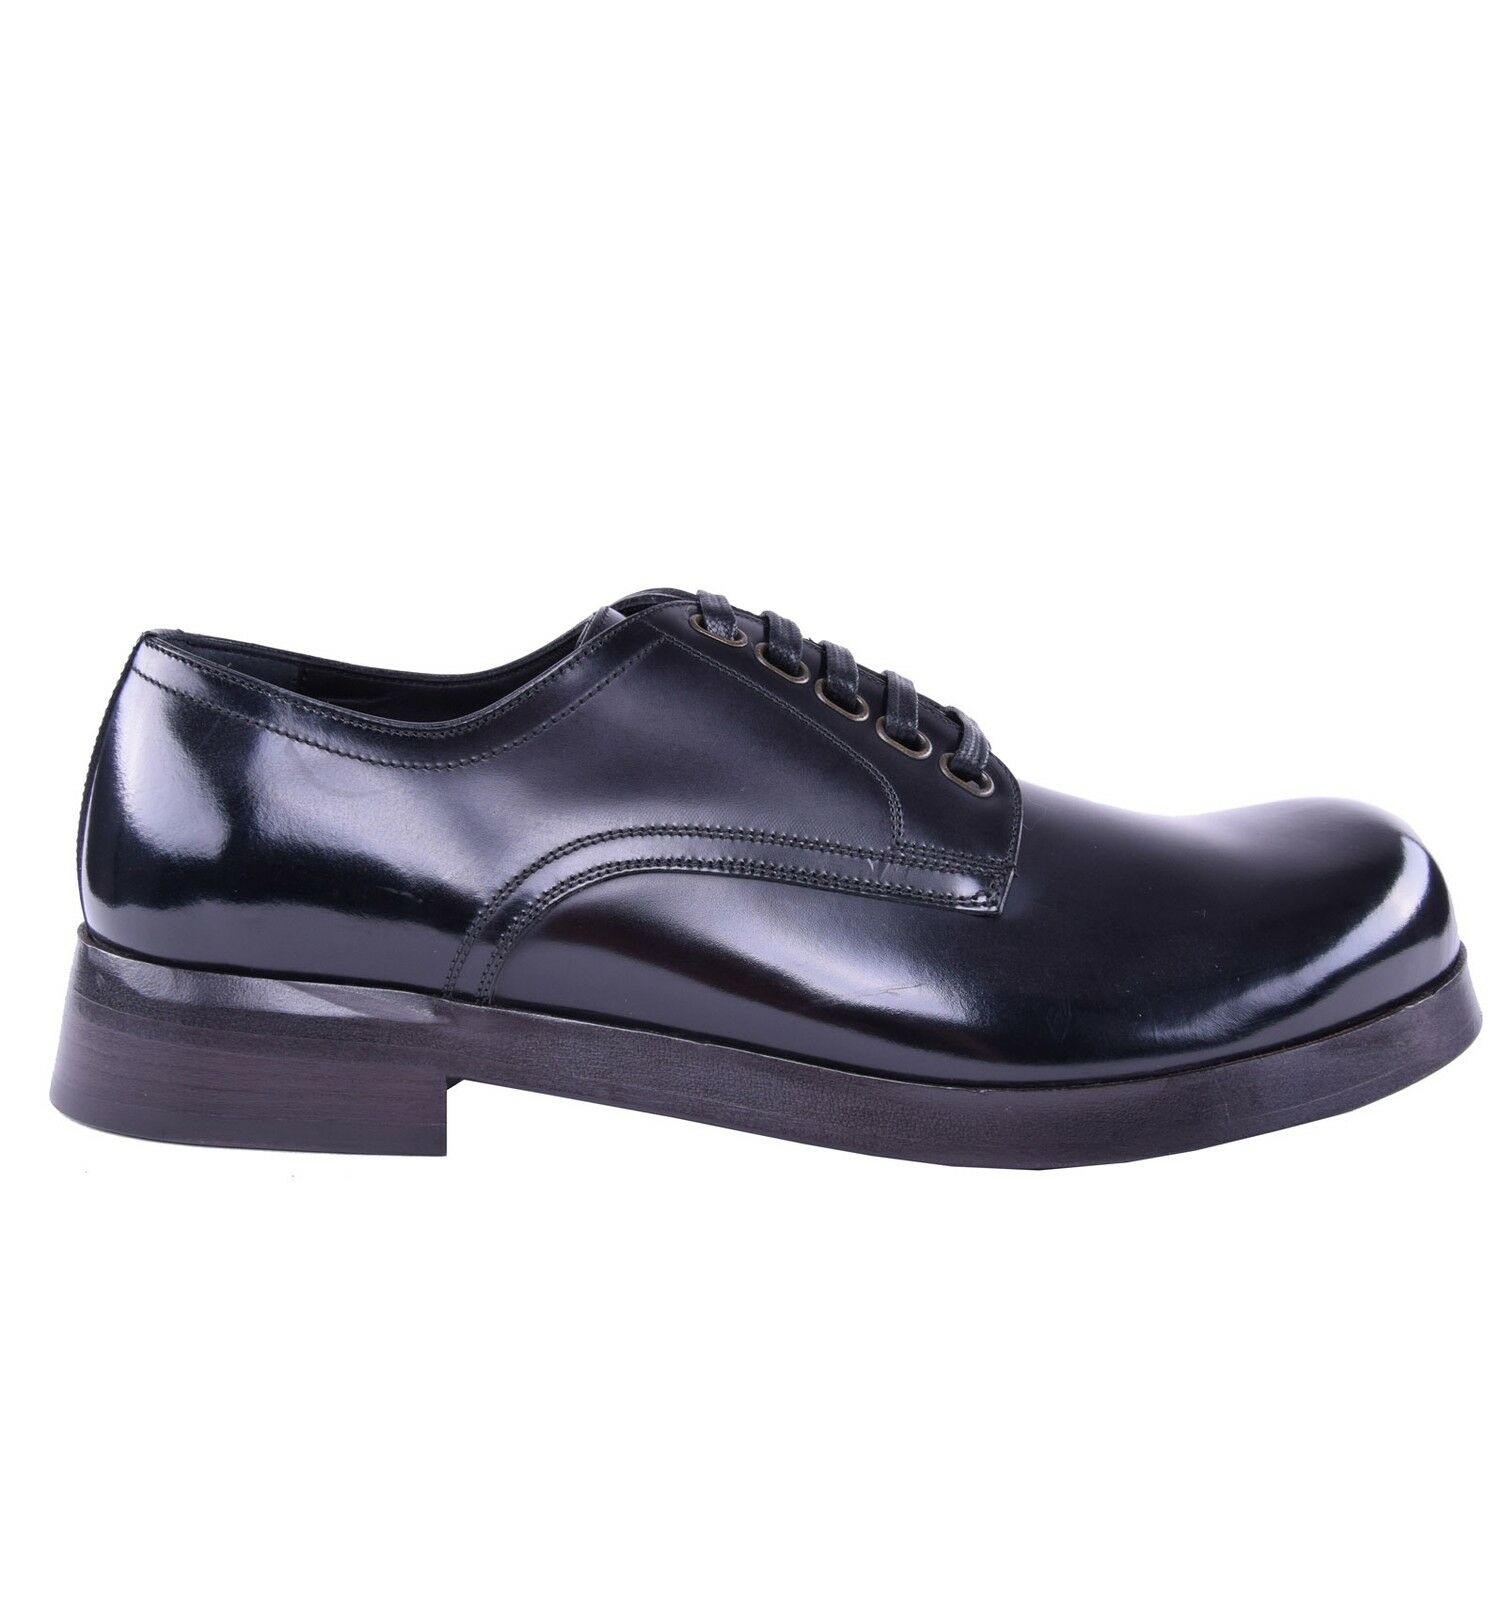 DOLCE & GABBANA RUNWAY Solid Patent Leather Shoes Black 03883